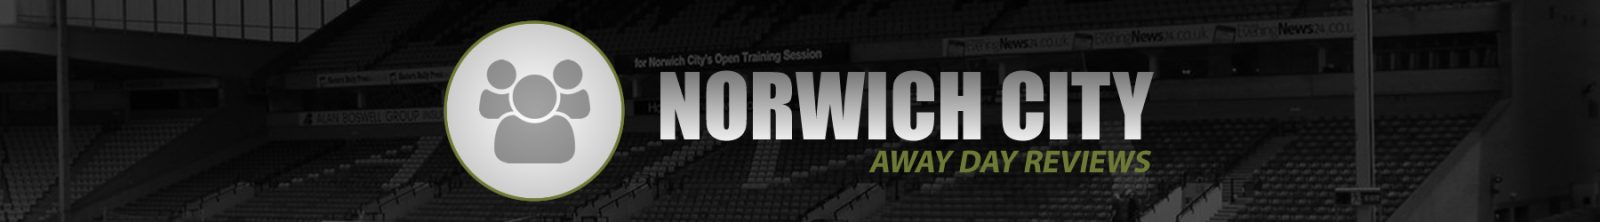 Review Norwich City